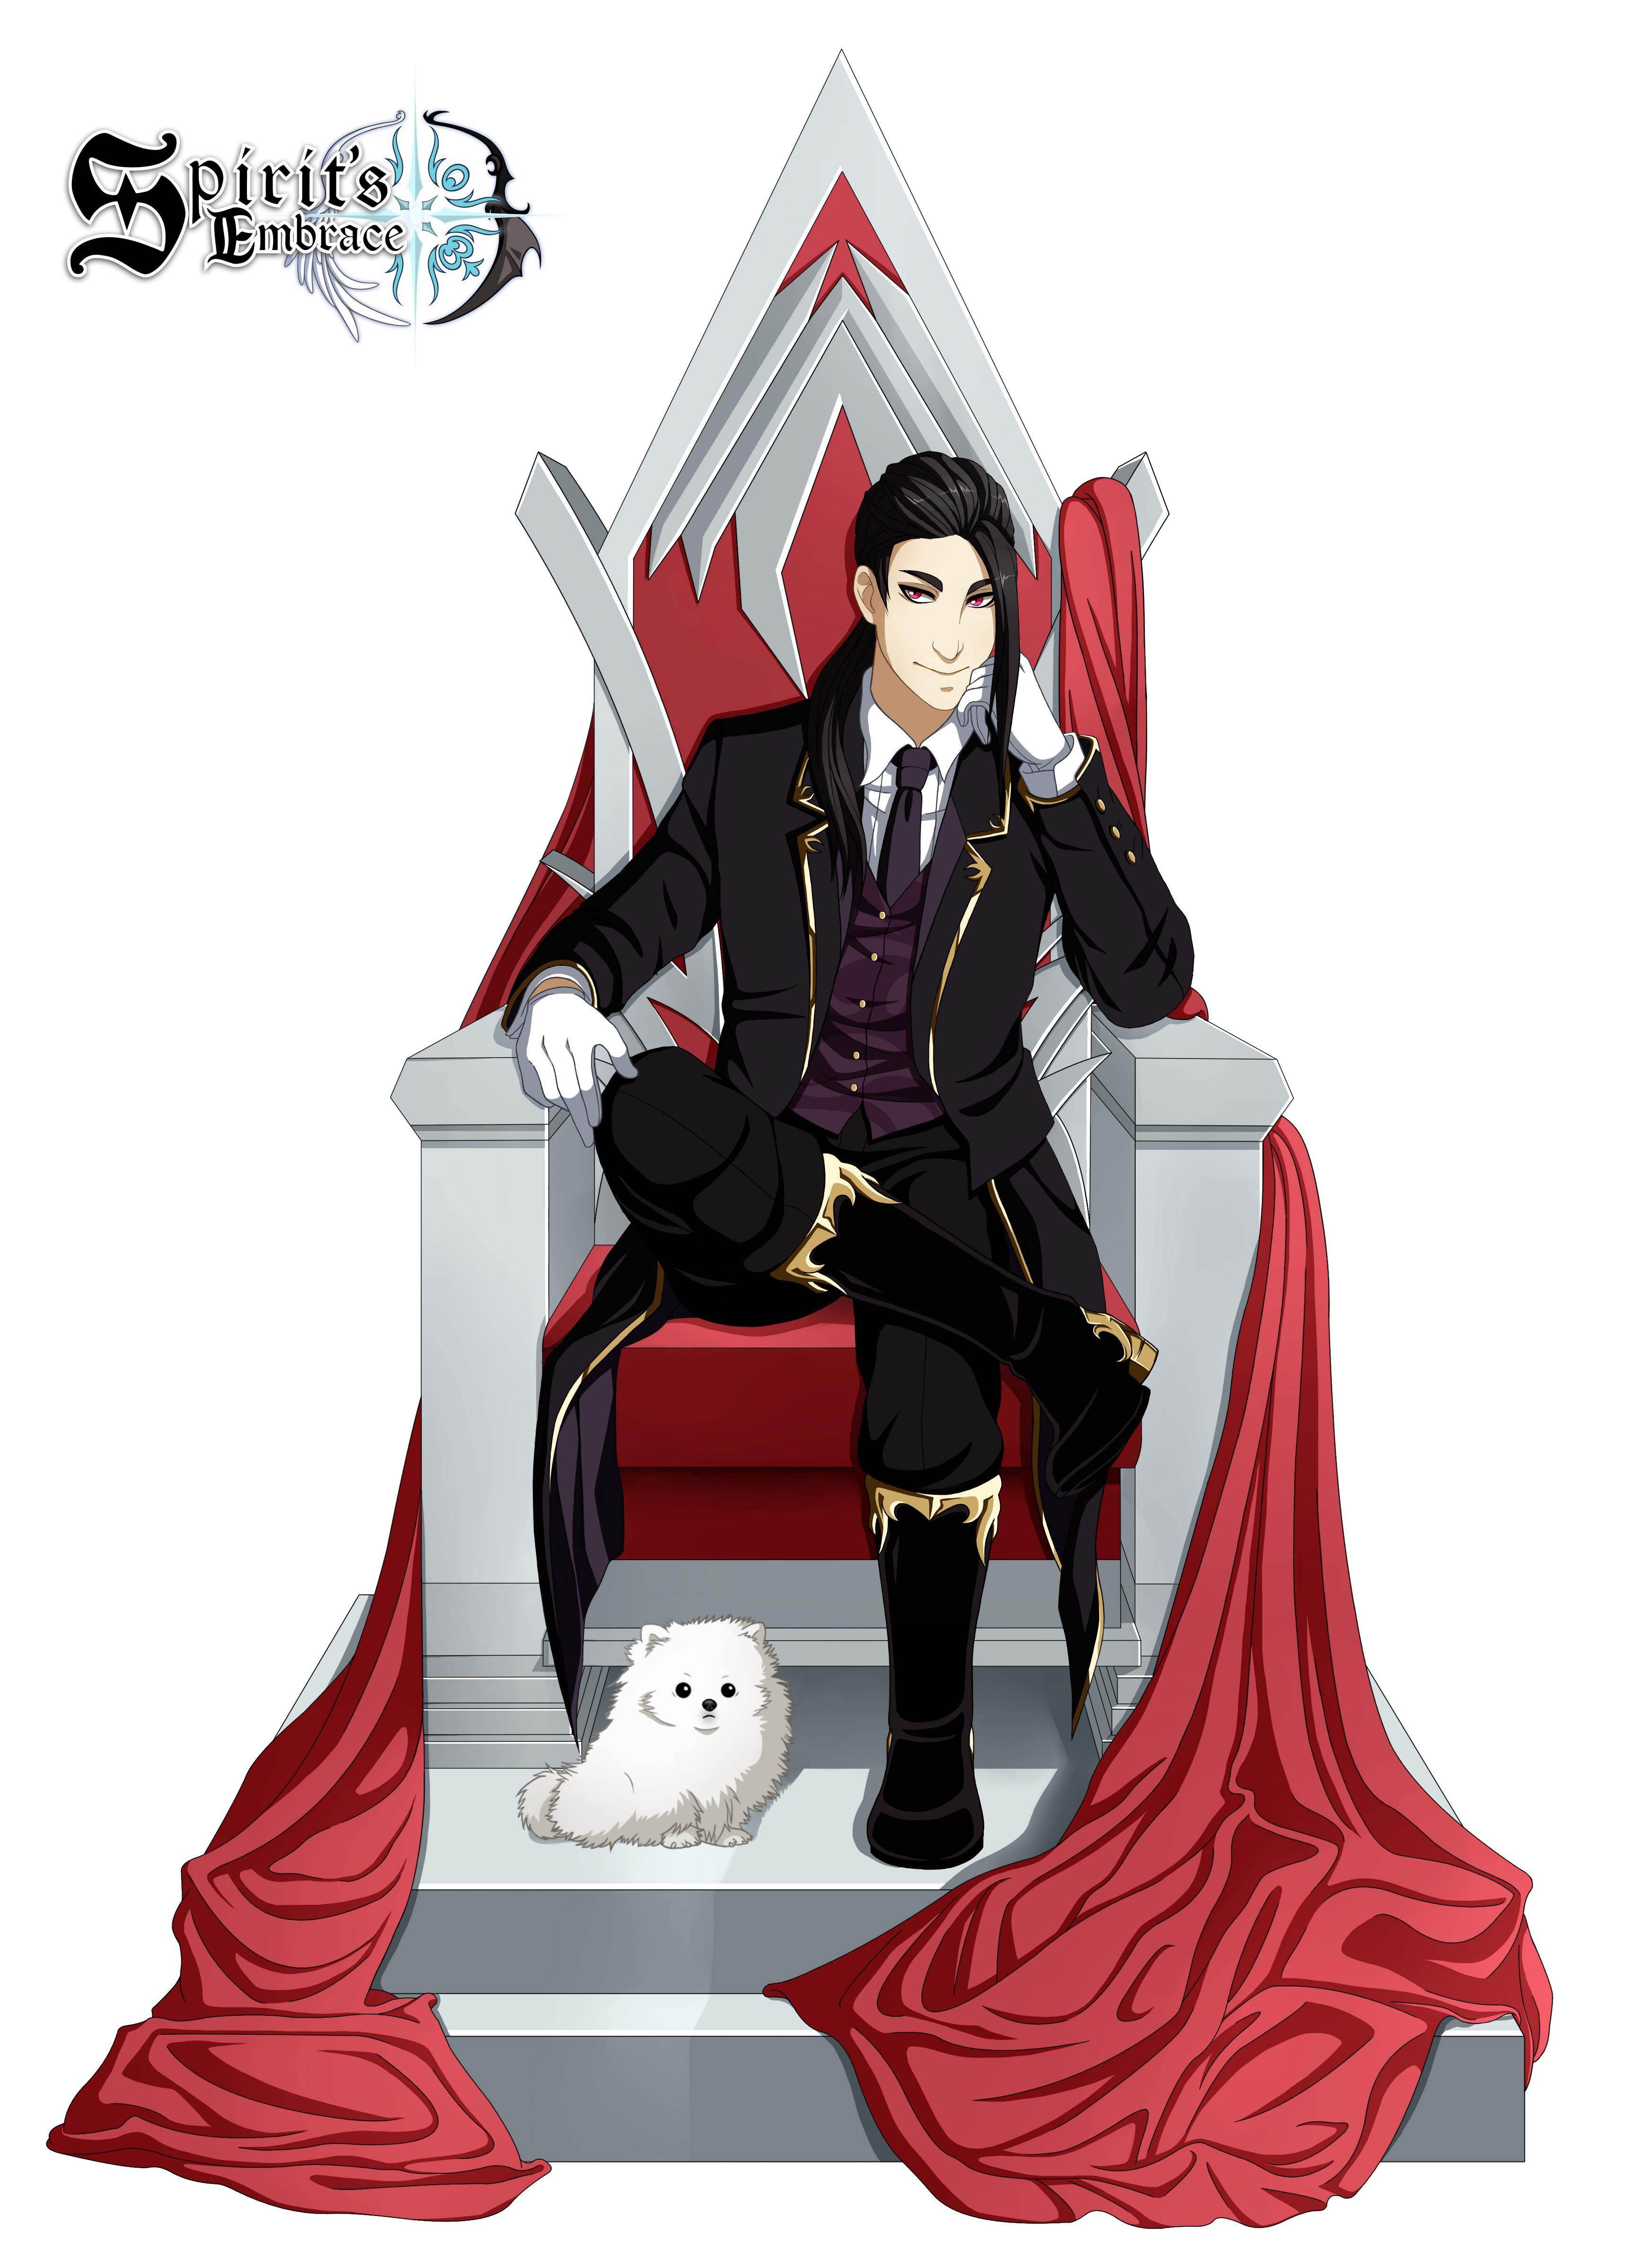 Throne by Meerclar